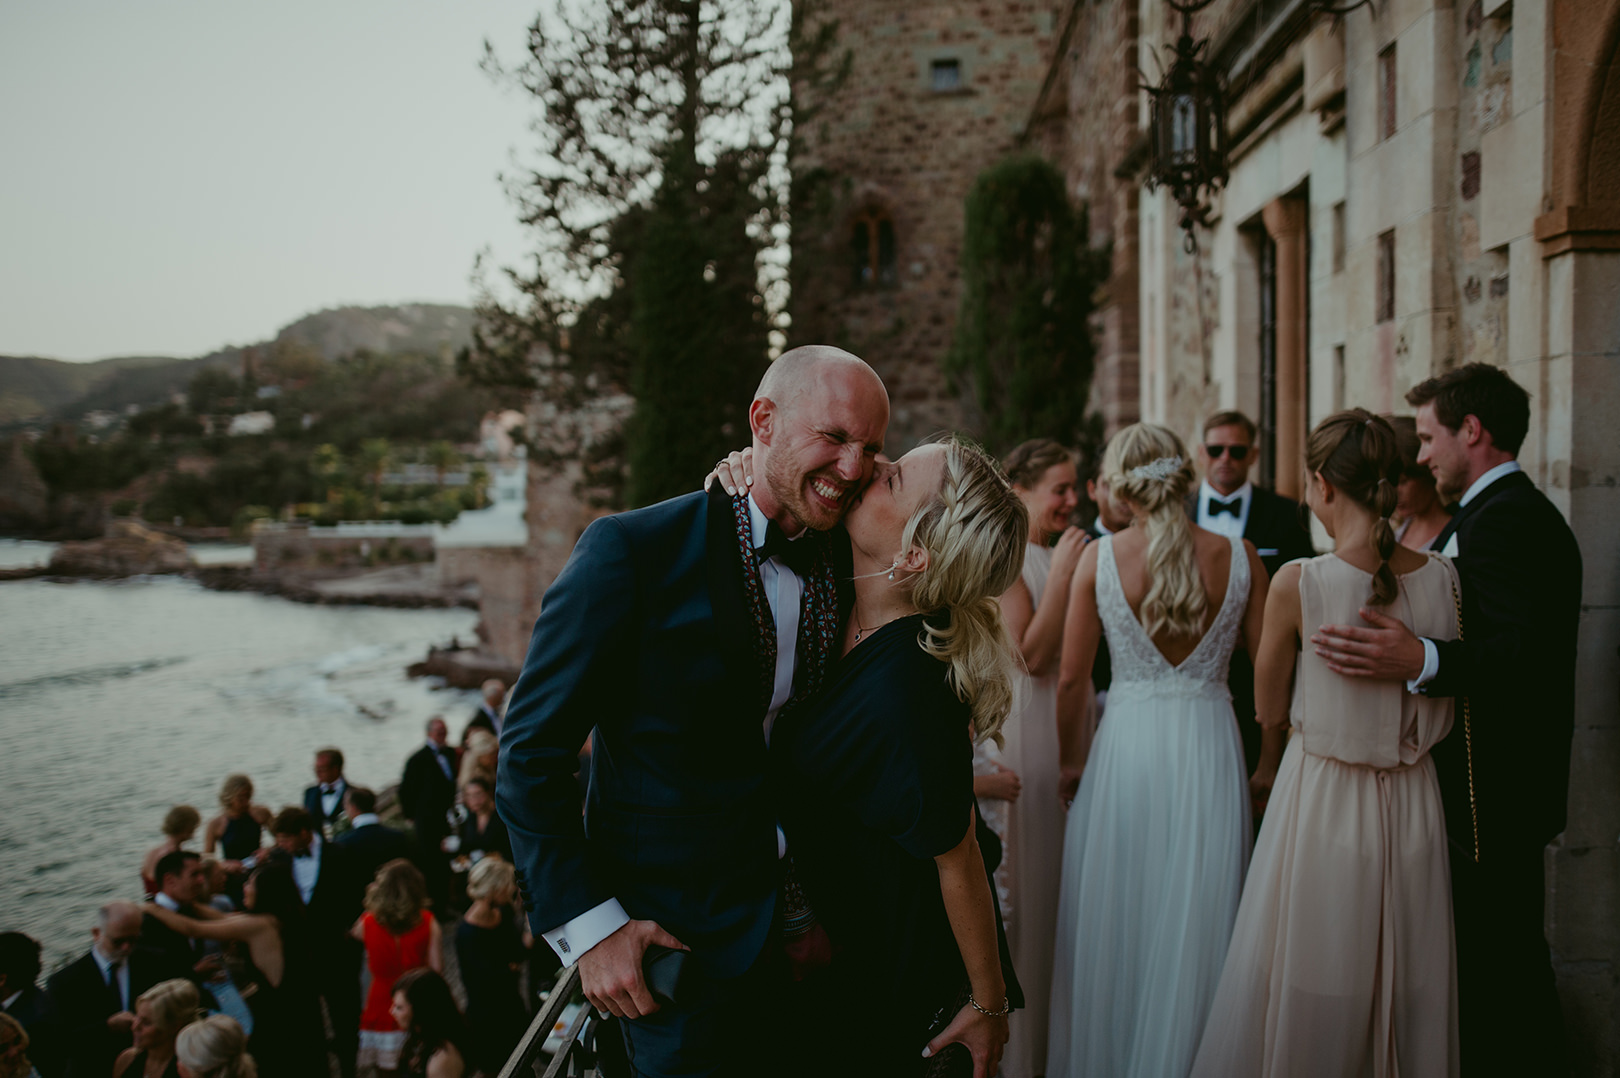 Fun wedding photography sout of France